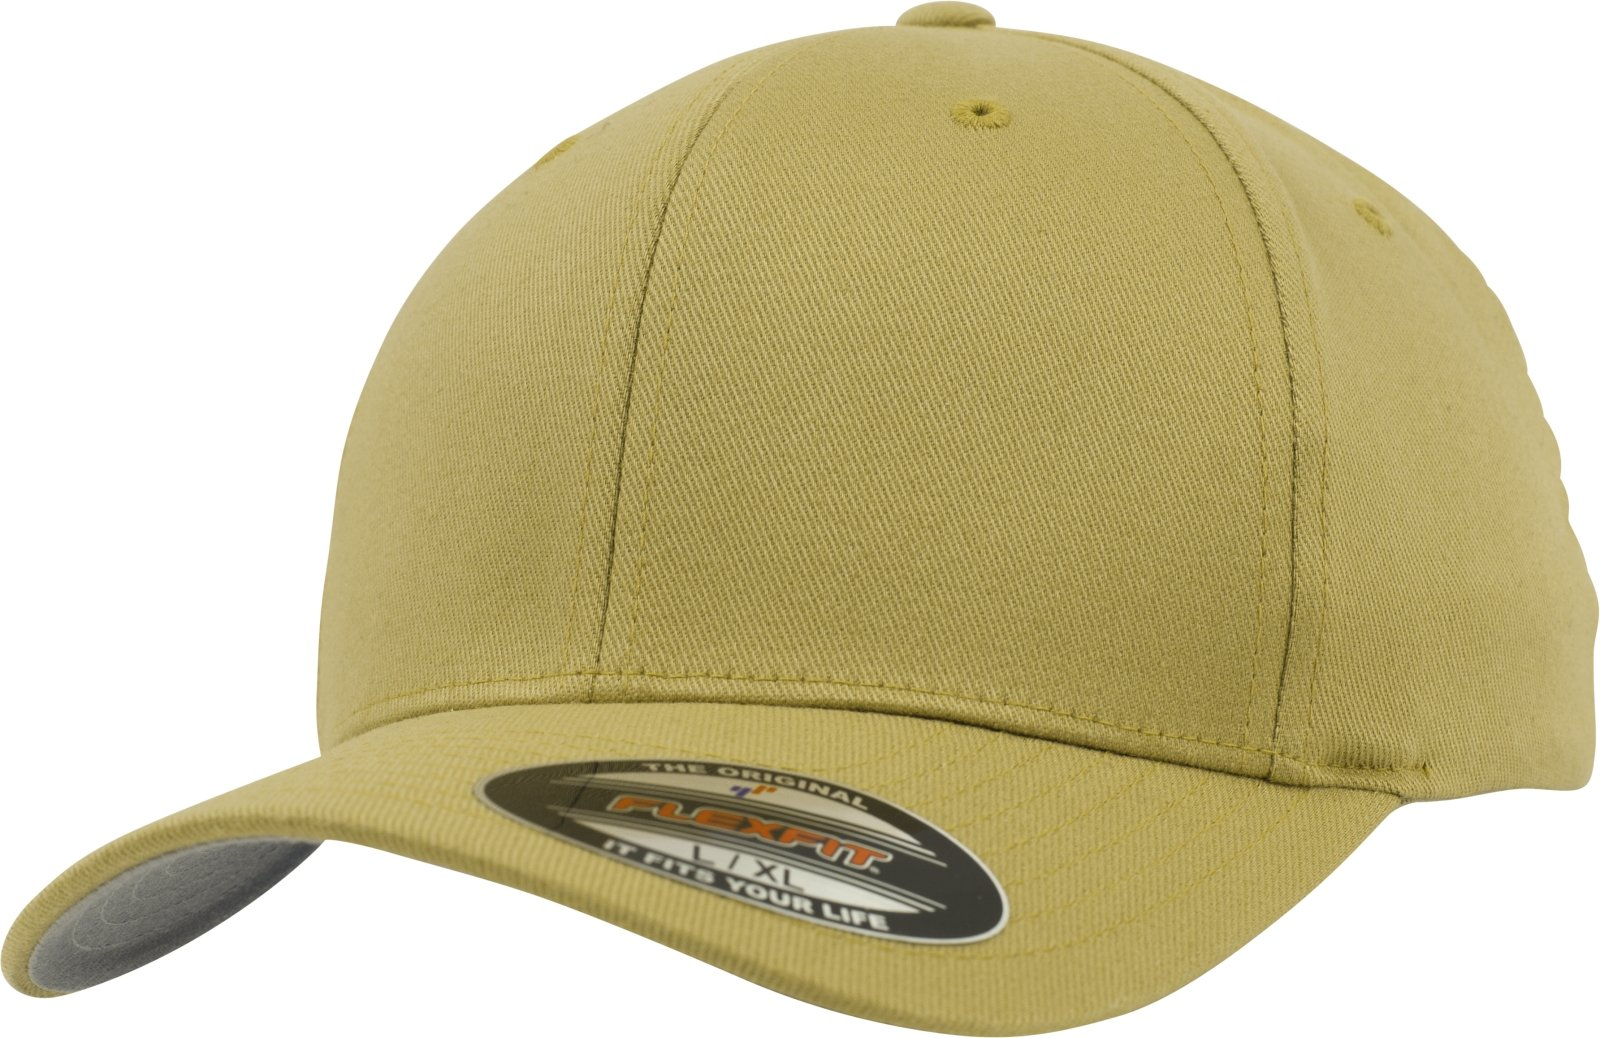 Flexfit Wooly Combed Caps, Unisex, Flexfit Wooly Combed, curry, S/M